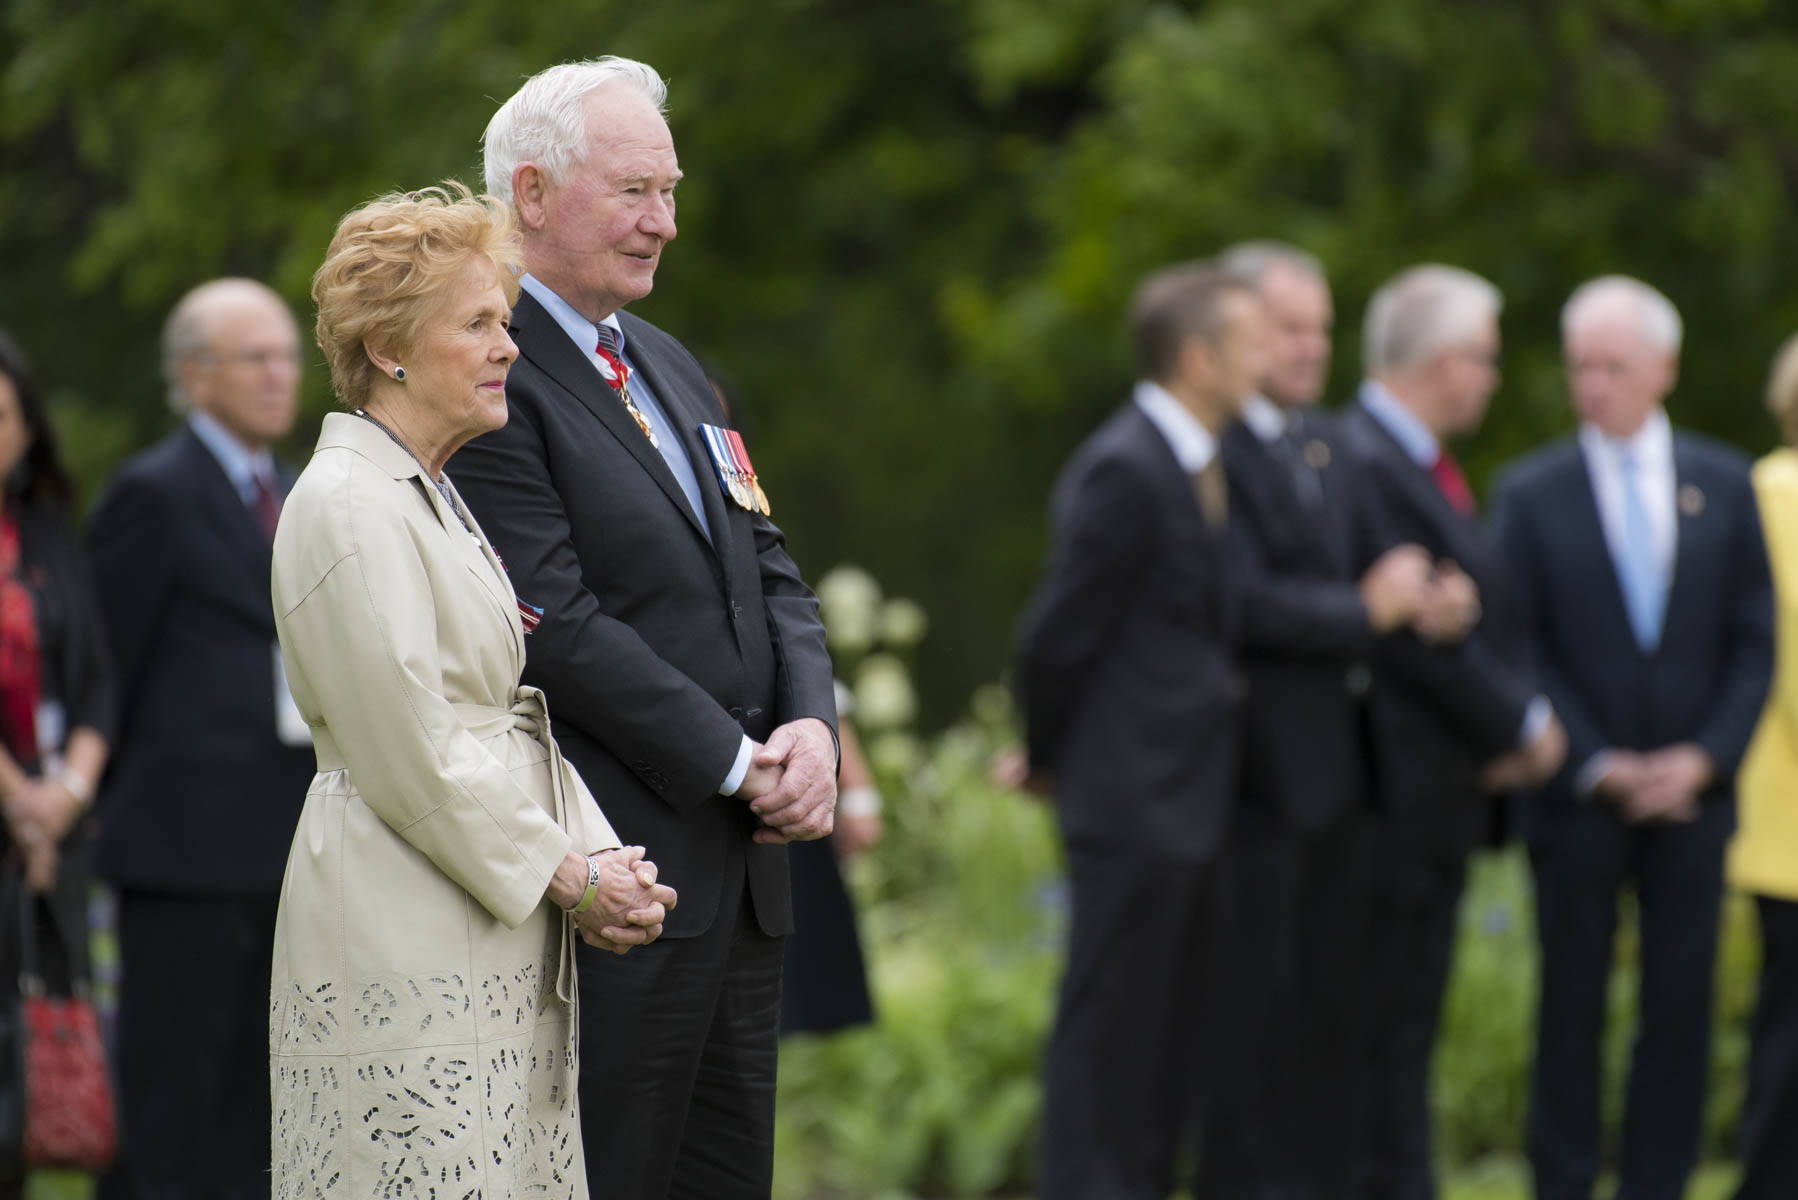 Their Excellencies the Right Honourable David Johnston, Governor General of Canada, and Her Excellency Sharon Johnston officially welcomed Her Excellency Michelle Bachelet, President of Chile, to Rideau Hall, on June 5, 2017.